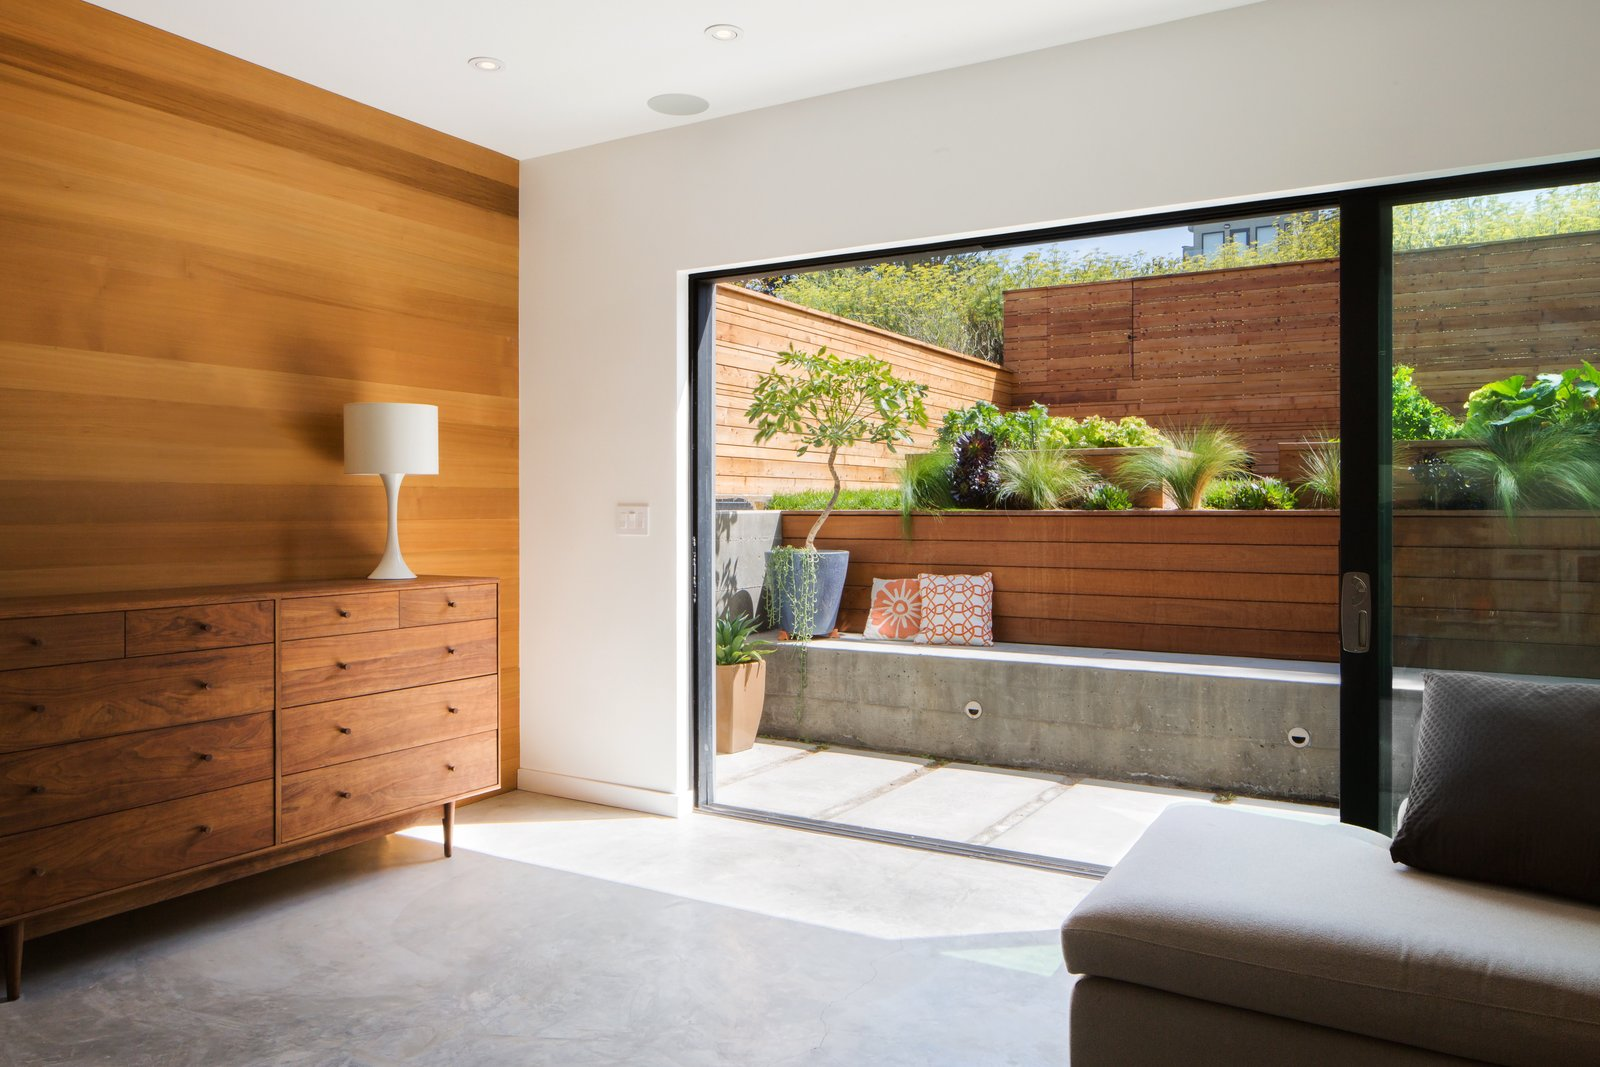 Bedroom, Storage, and Concrete Floor The downstairs family room serves as a guest room for visiting family, the kids' play area and art studio, movie-watching room, and indoor/outdoor living room.  Best Photos from Revamping the San Francisco Vernacular, Modern Design and Technology Serves A Busy Family